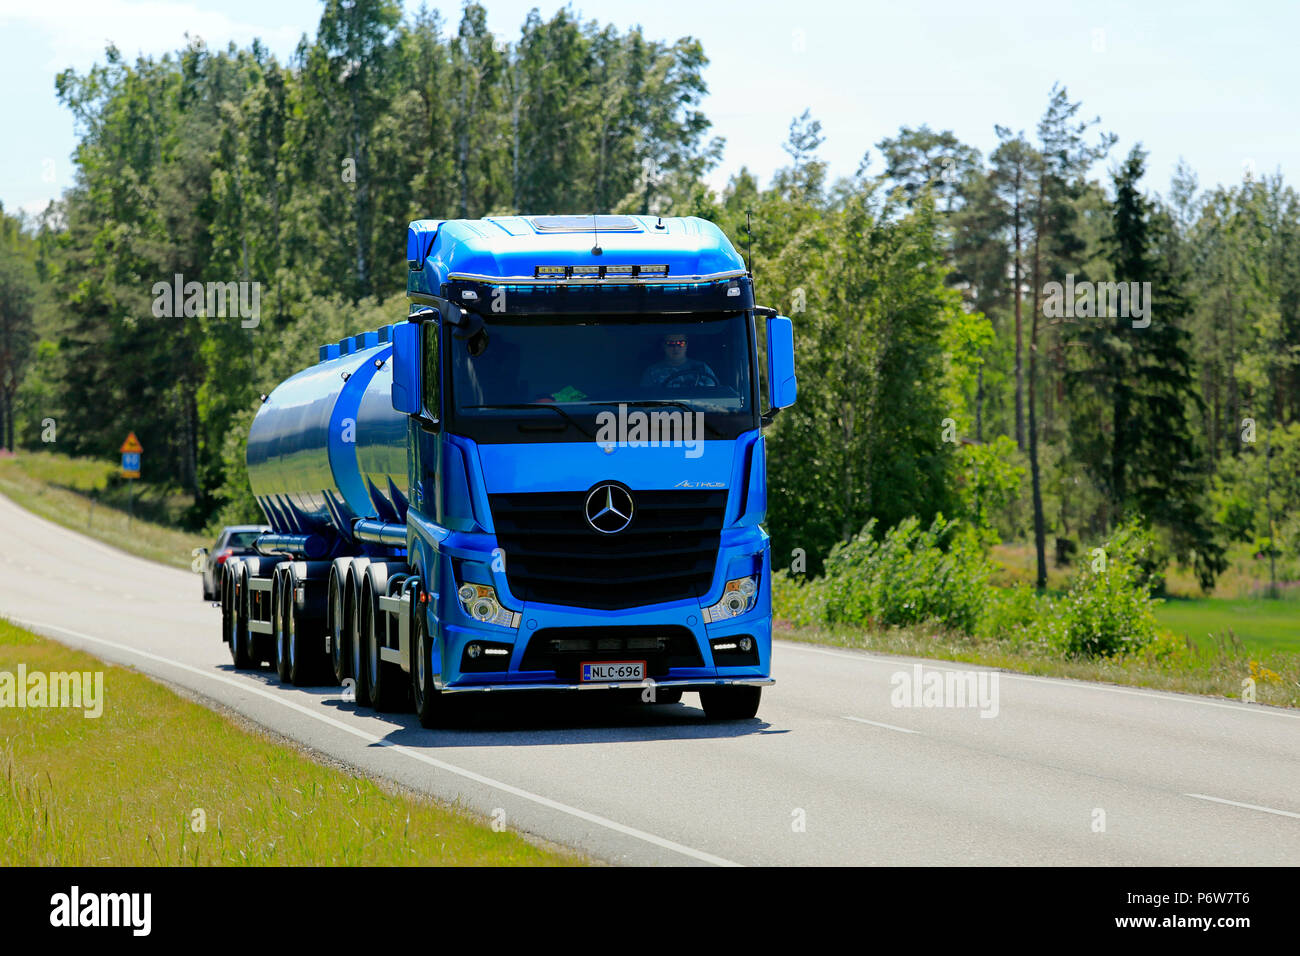 Lorry Truck Tank Stock Photos & Lorry Truck Tank Stock Images - Alamy